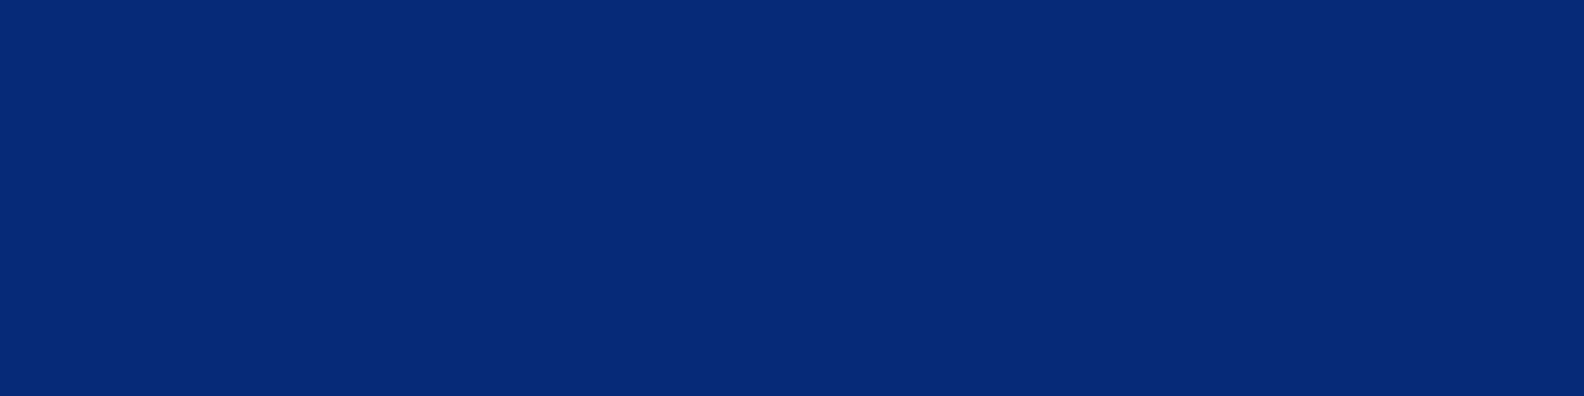 1584x396 Catalina Blue Solid Color Background